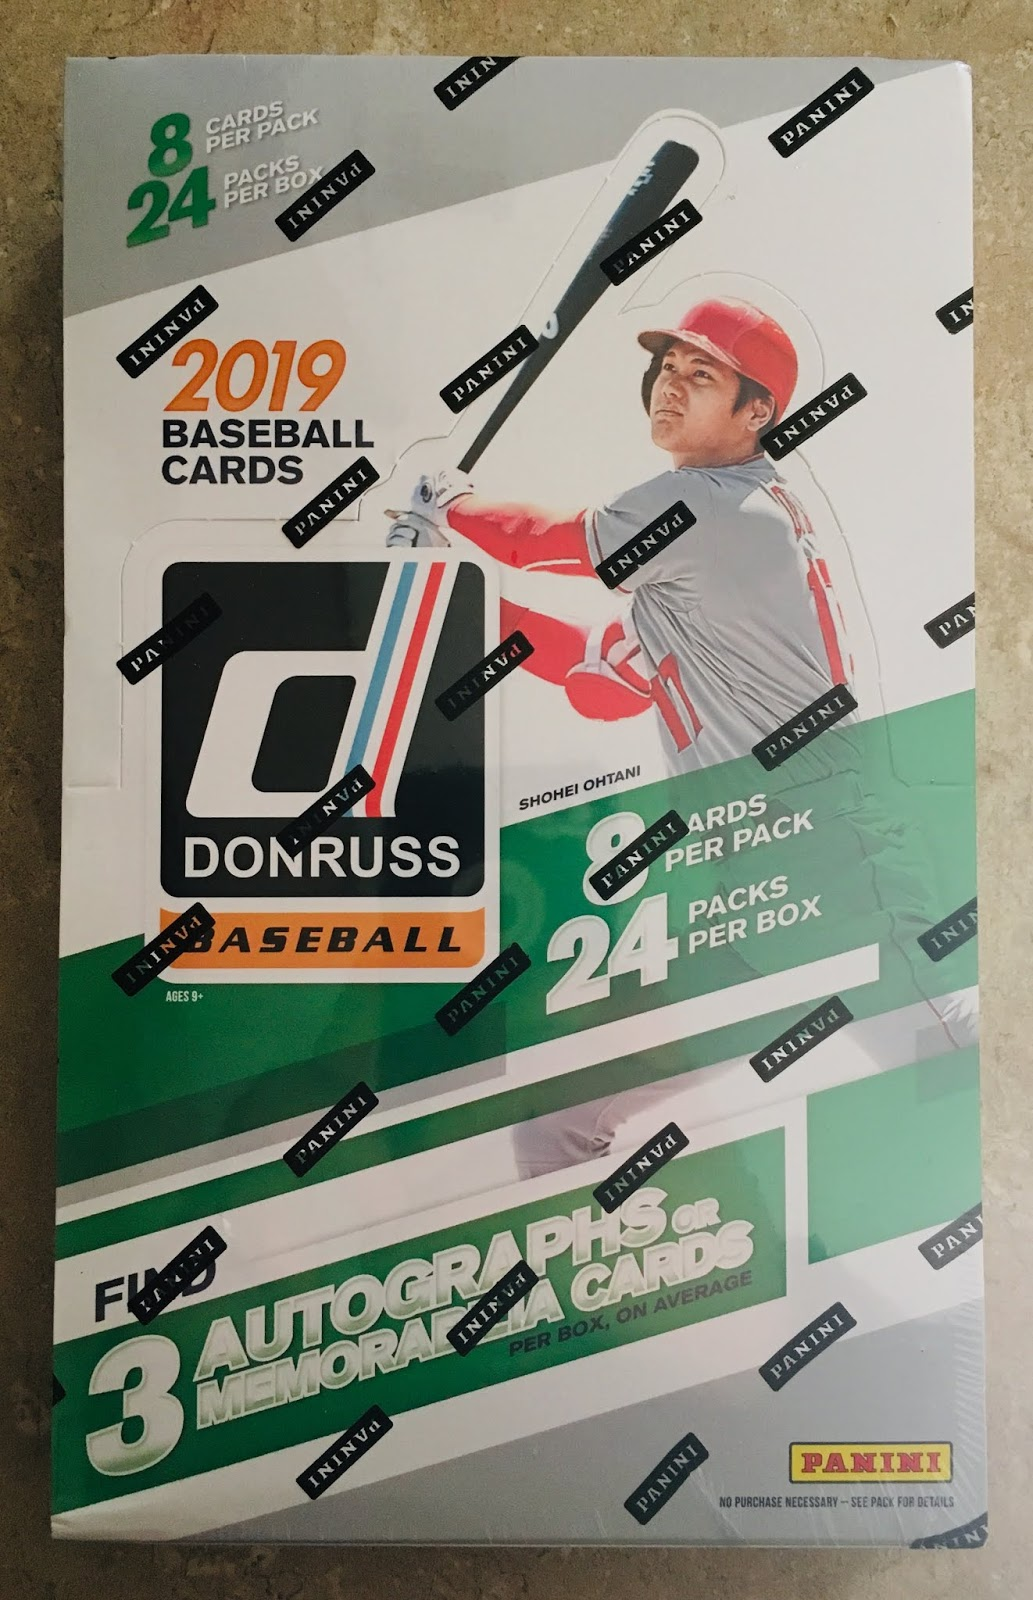 bb34944a8a65 Each year I think Panini is doing a better job and when I saw the ads  solicited for 2019 I knew I wanted back in.